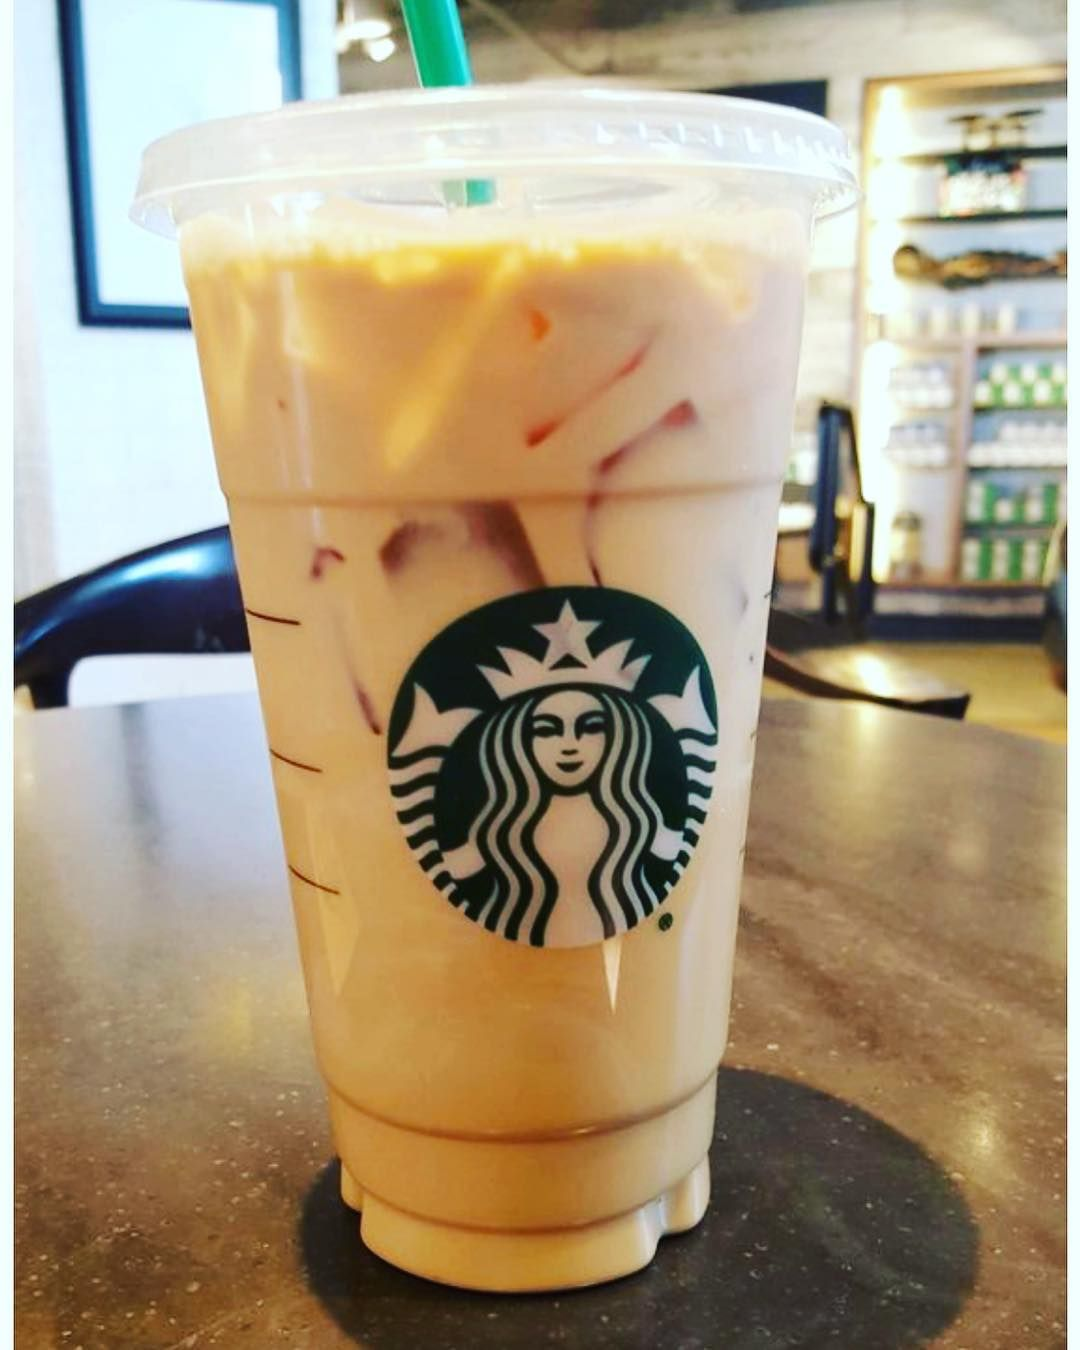 The Best Iced Cold Coffee Drinks At Starbucks With Full